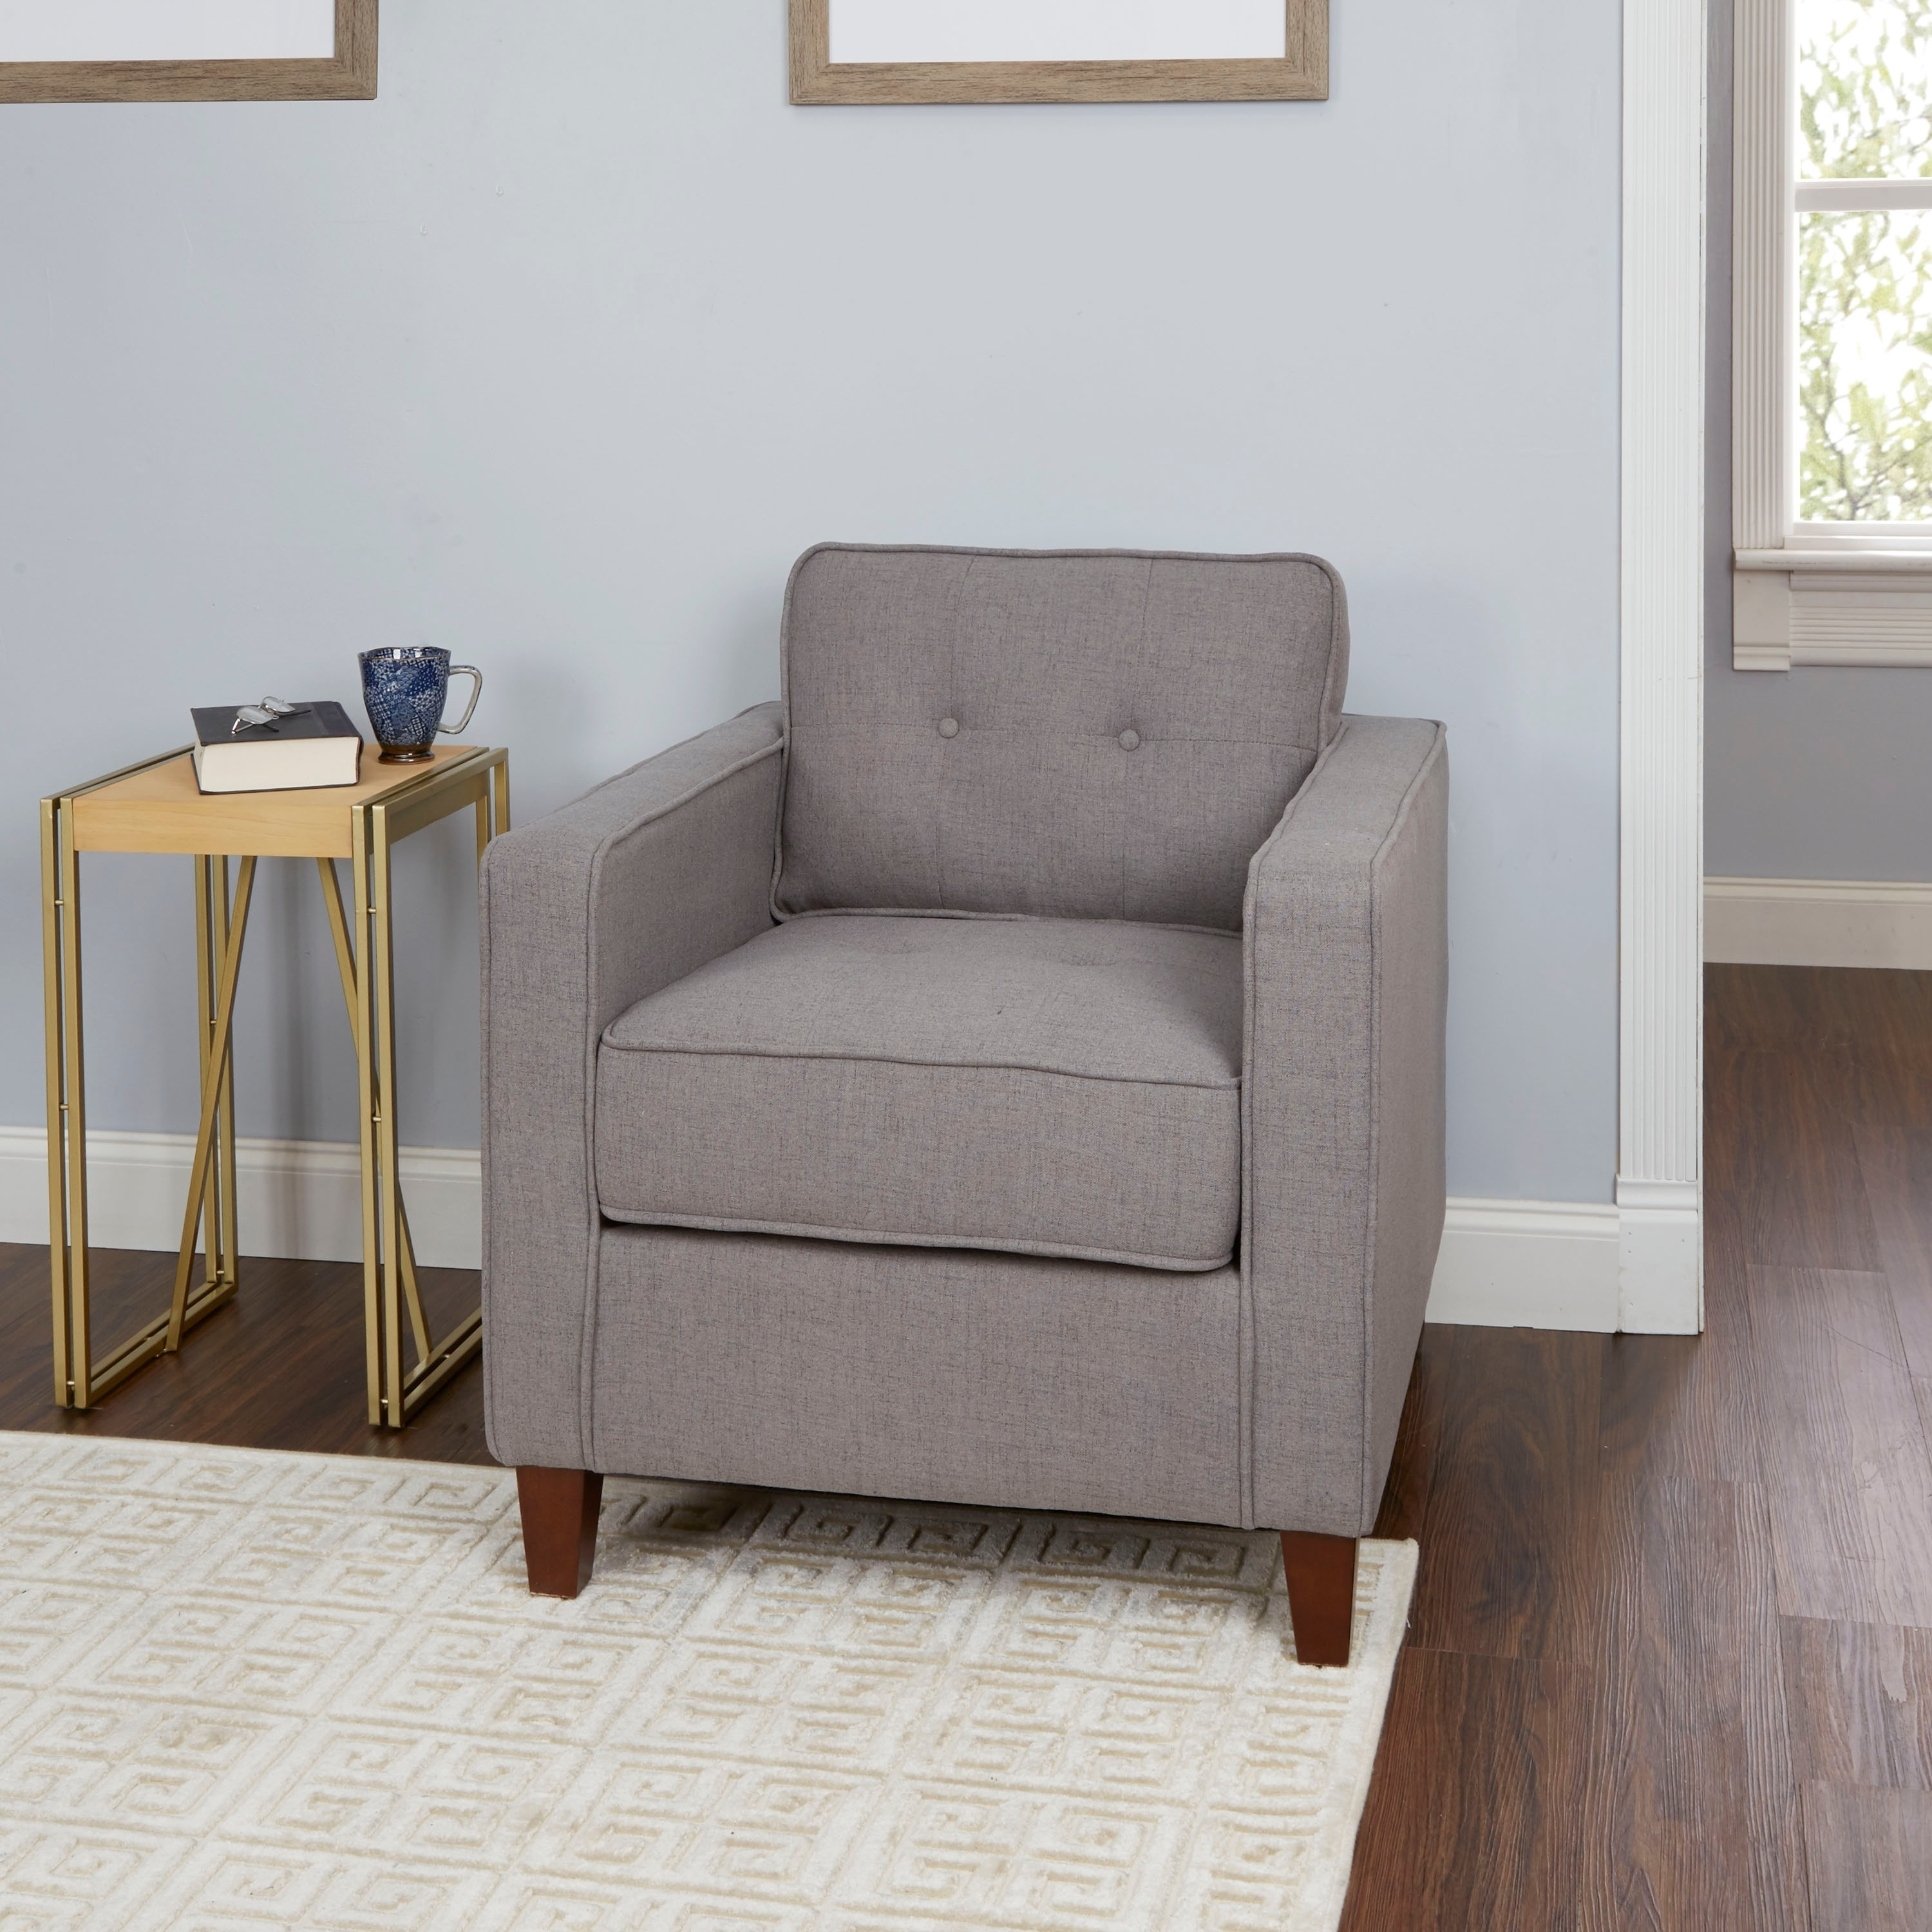 Schuler Square Arm Tufted Upholstered Club Chair